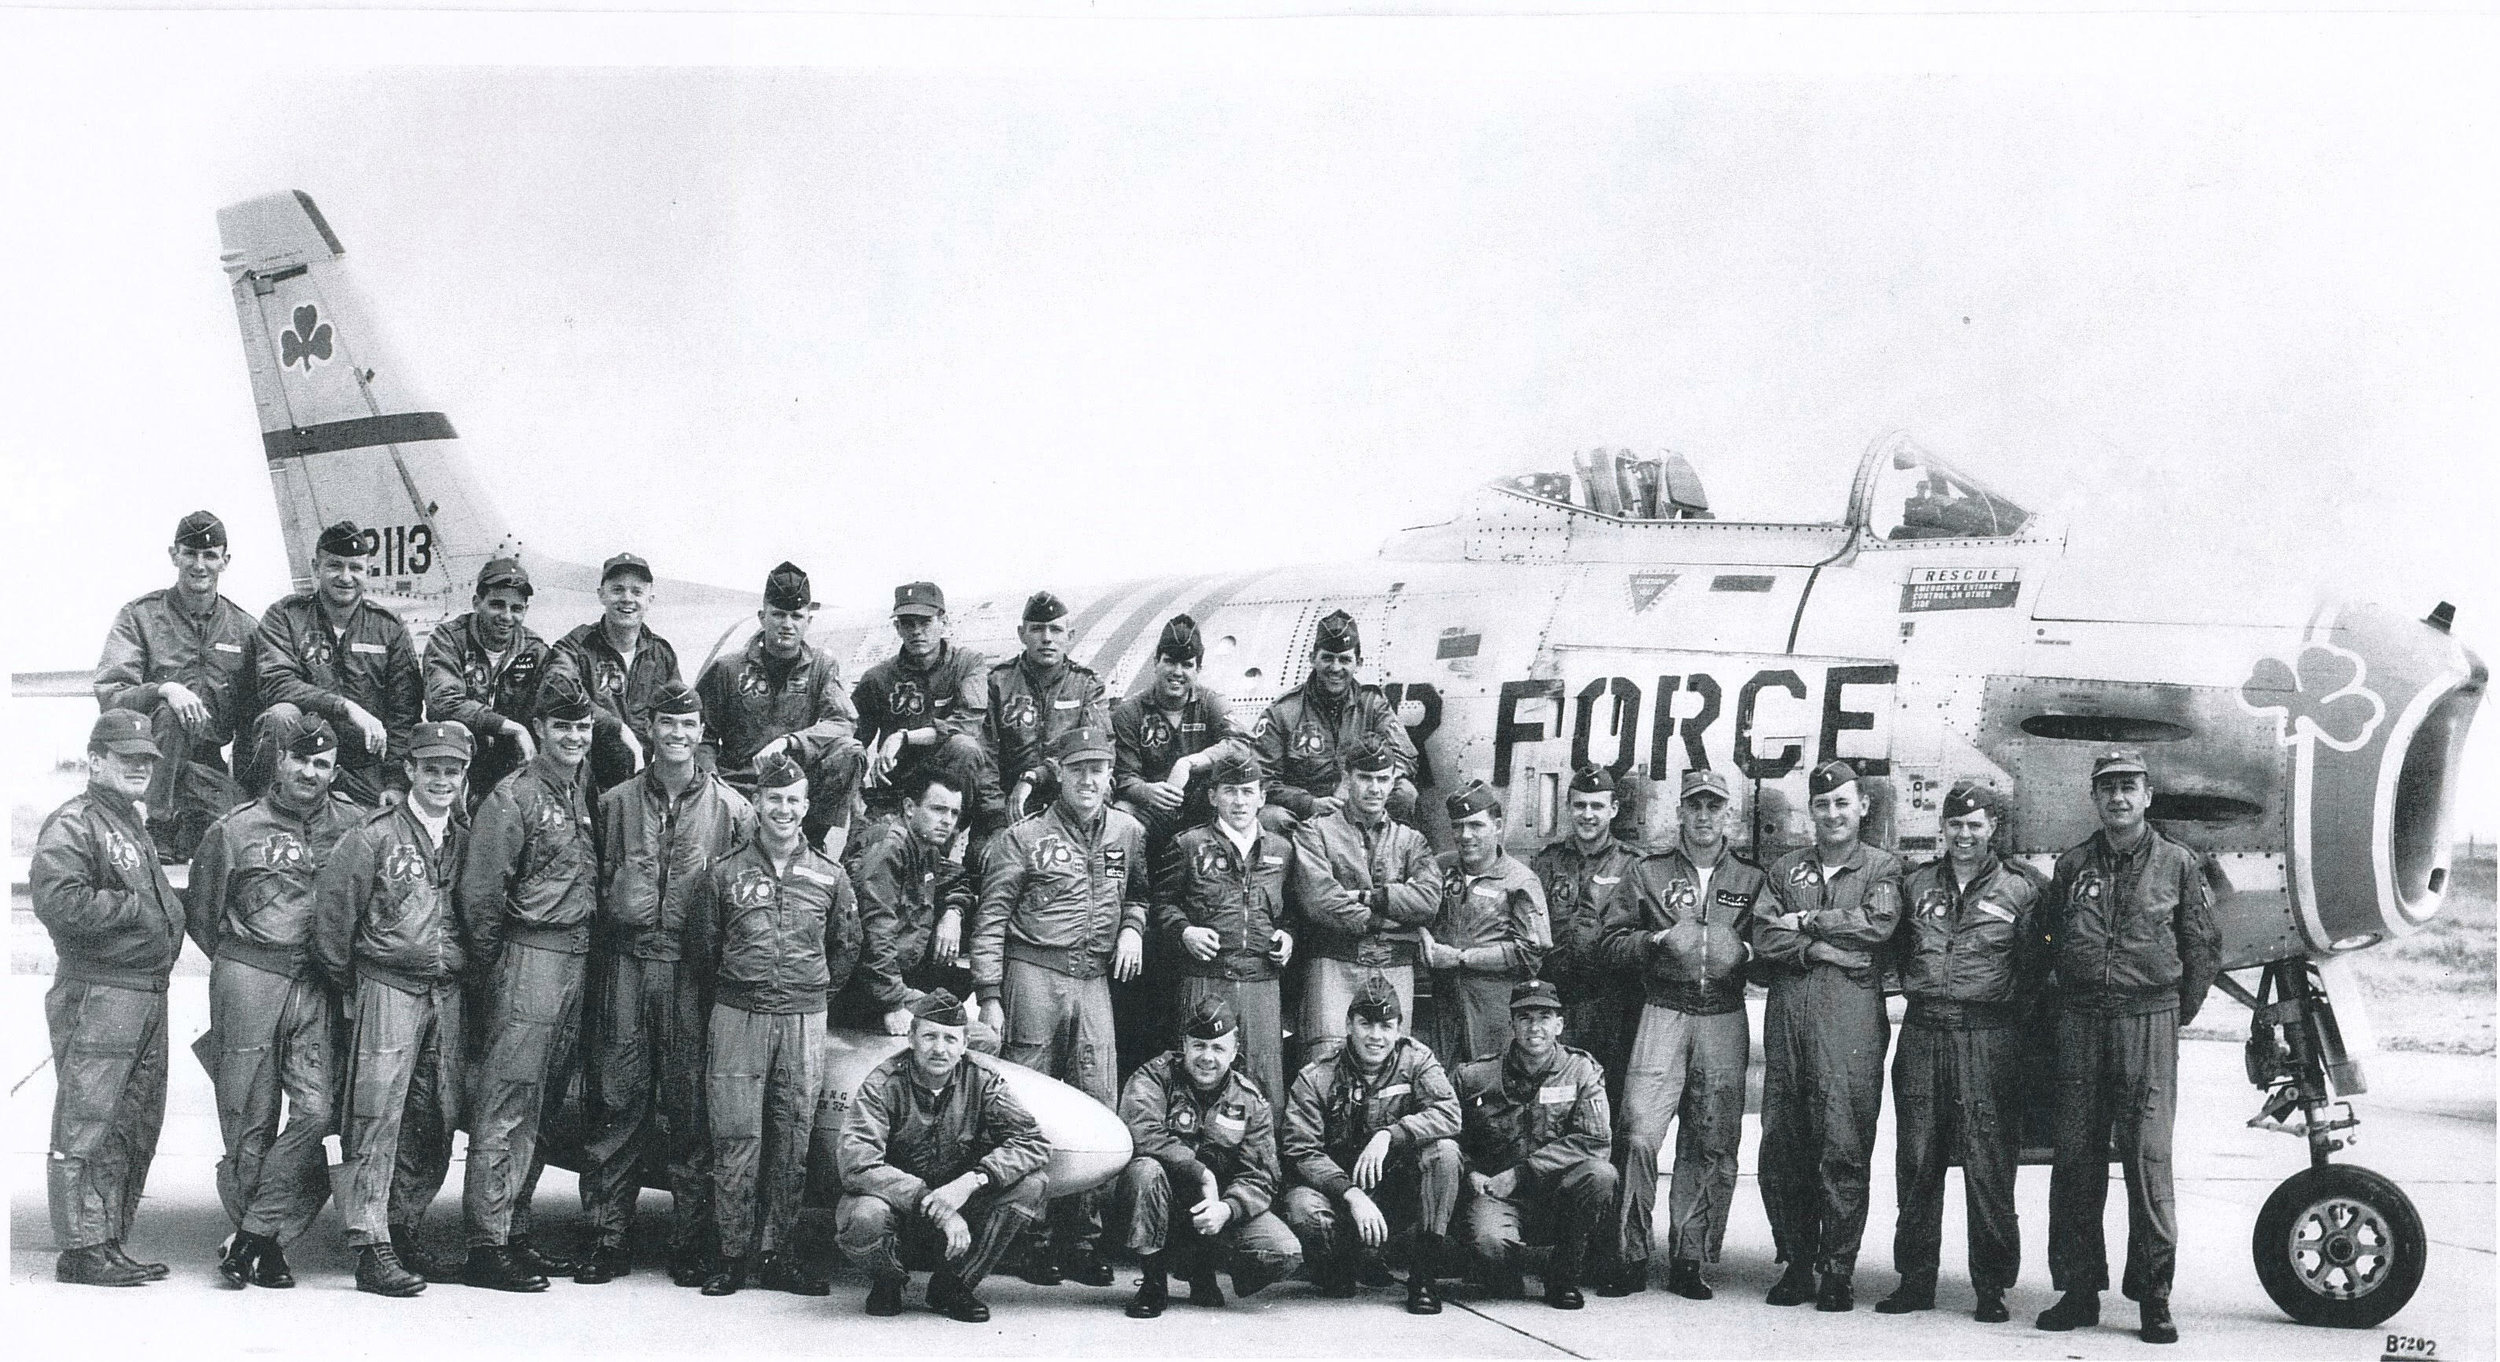 Here's a pic of my old 101 Tac Fighter Squadron from the Mass Air Guard back in 1961-2. We were activated by Pres JFK when Mr. K put up the Berlin Wall... and deployed to Phalsbourg Air Base in eastern France. Our F-86H (best fighter plane... ever!) and our flight jackets display the shamrock... and we were widely known (mainly by us) as The Irish Air Force. I'm 5th from the left on the upper row. Many, many memories!!